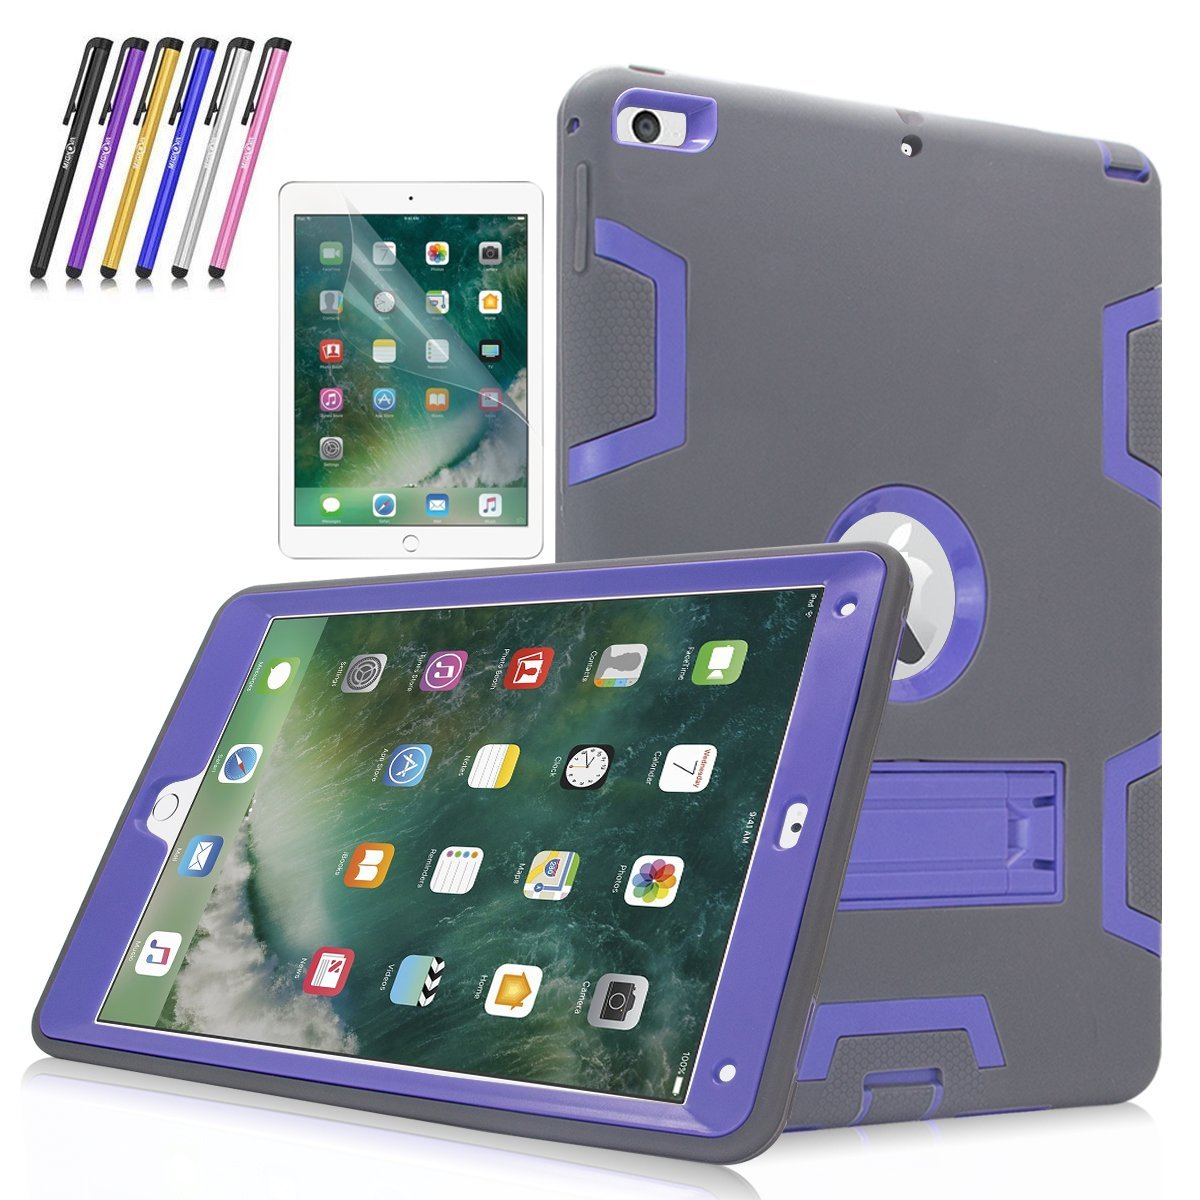 "New iPad 9.7""Case, Mignova Heavy Duty rugged Hybrid Protective Case with Build In Kickstand For iPad 5th 6th Generation 2017/2018 A1822/A1823 + Screen Protector Film and Stylus Pen (Gray / Purple)"